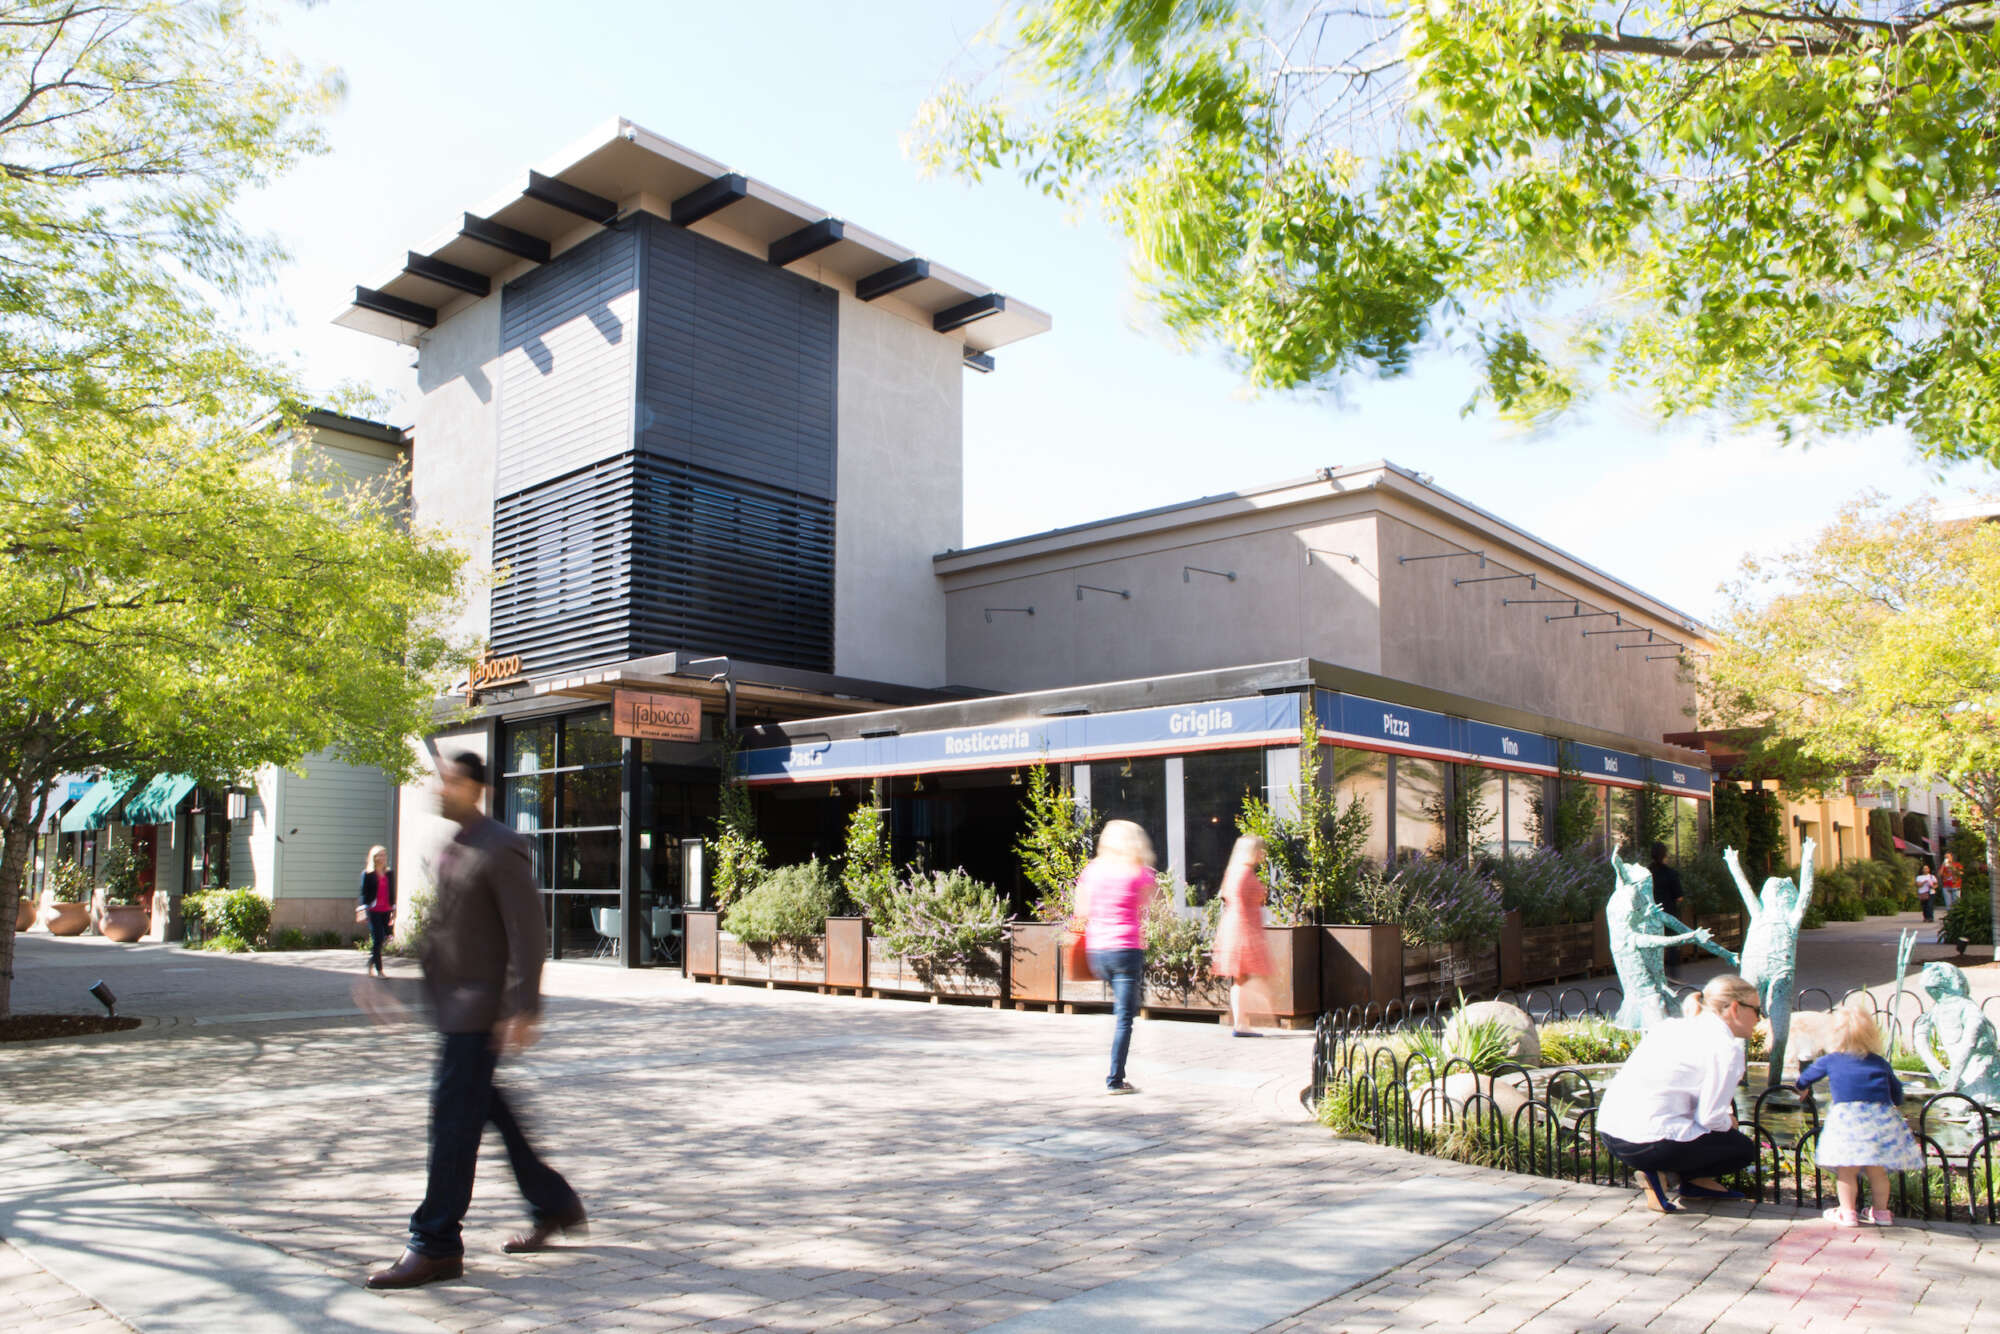 Alameda South Shore Center common area with restaurant and guests in courtyard